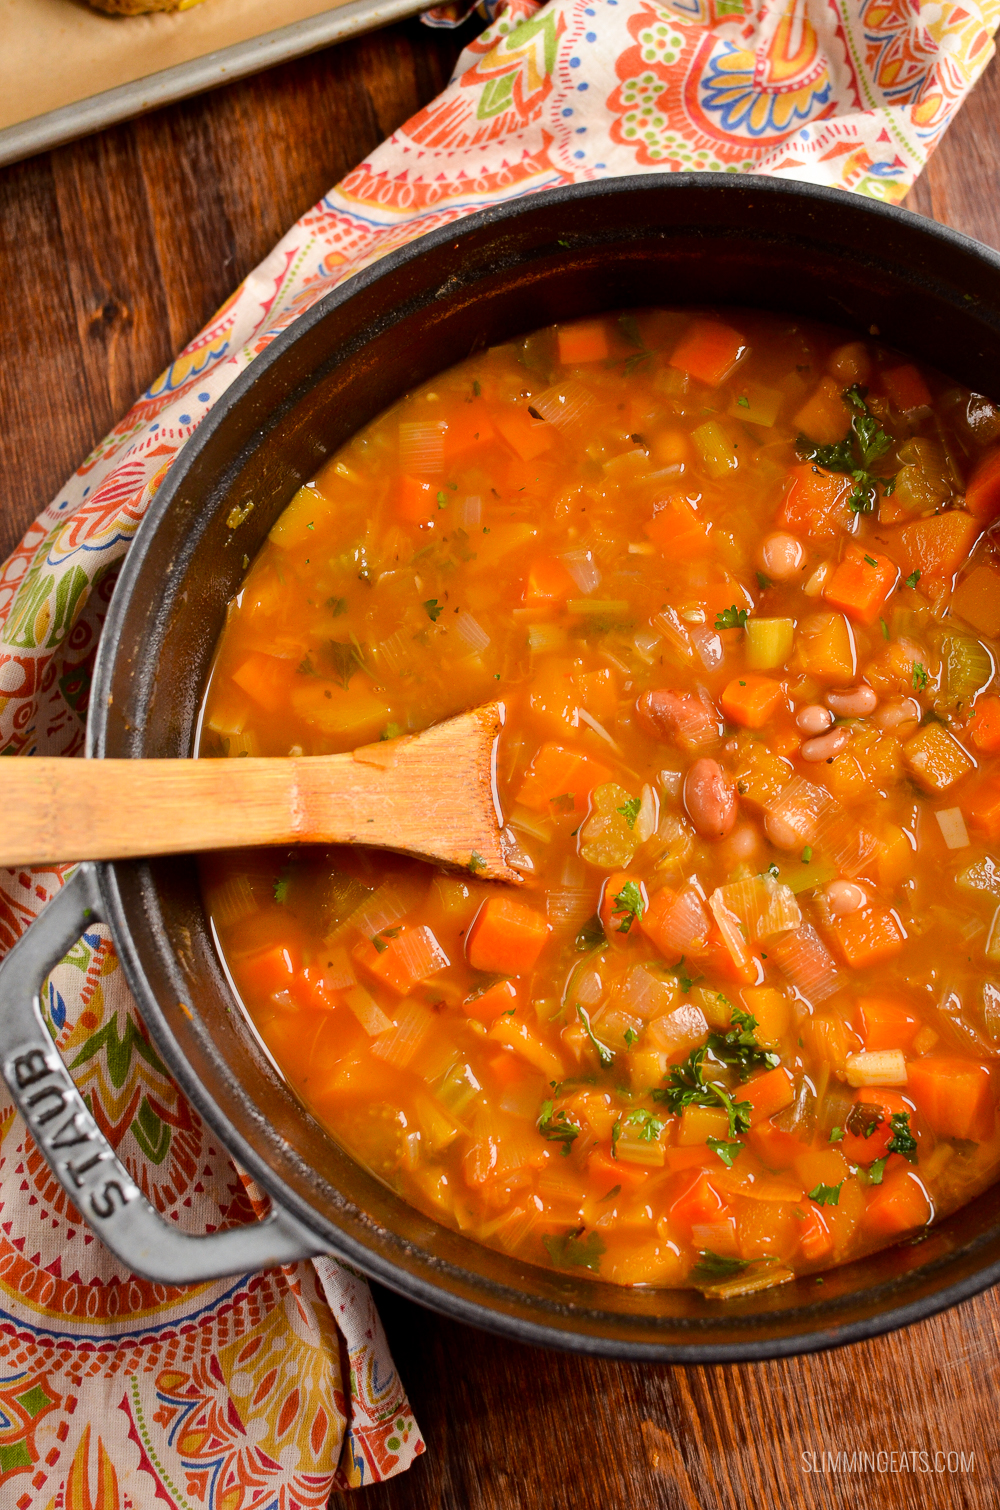 vegetable and bean stew in cast iron pot with wooden spoon